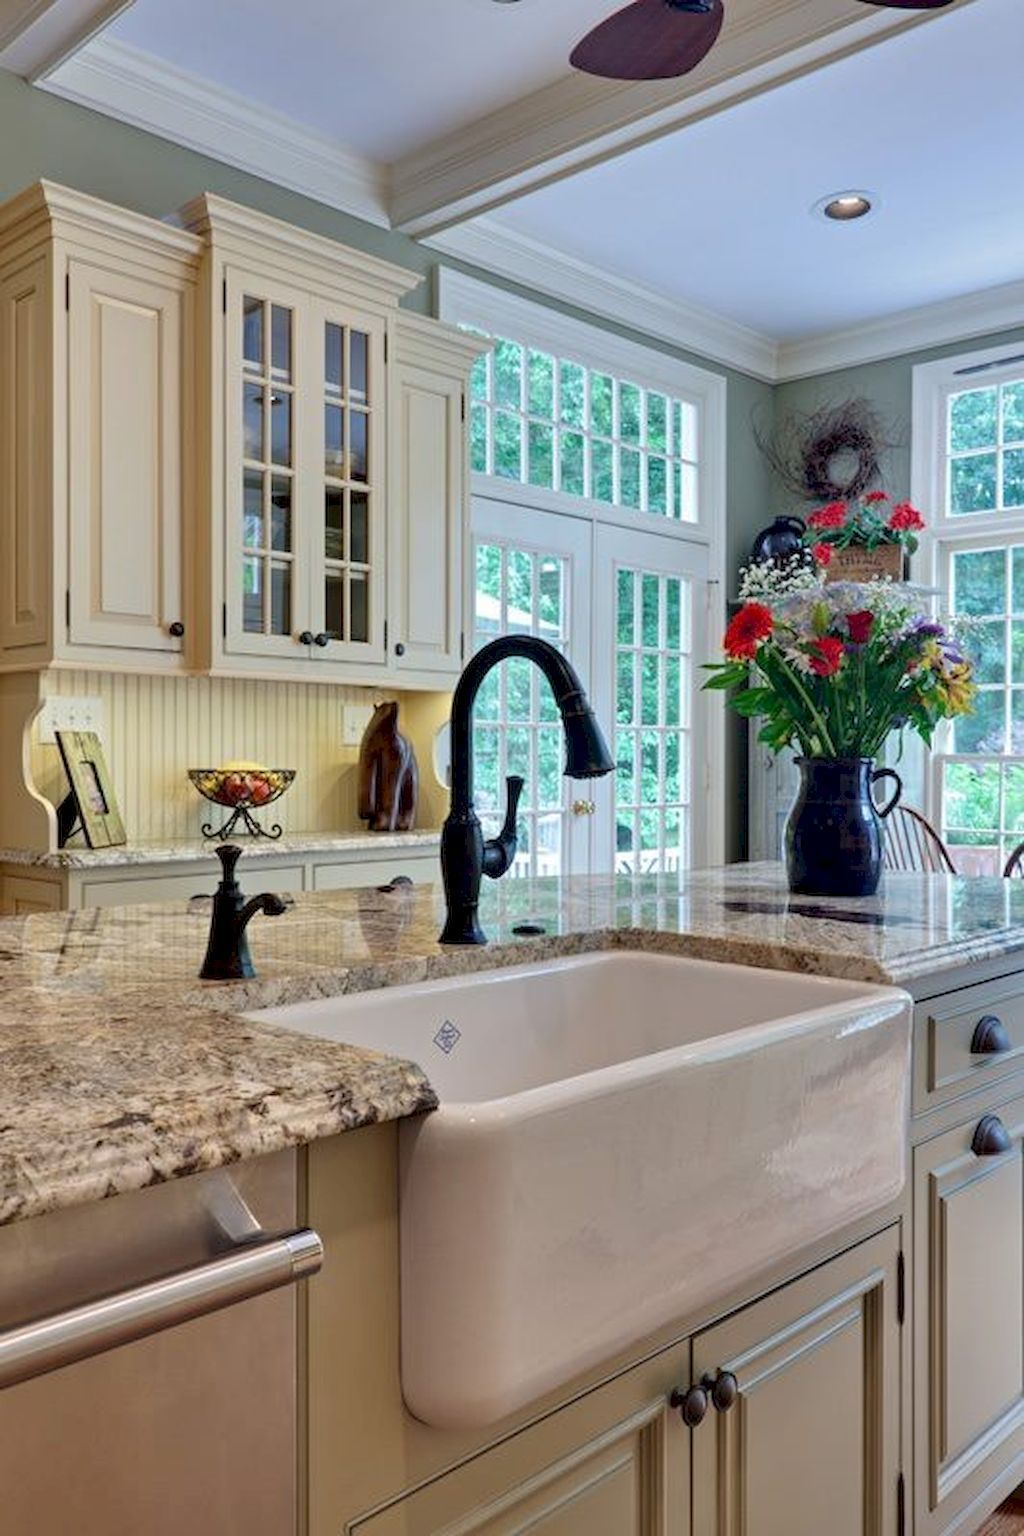 Rustic kitchen sink farmhouse style ideas (50 | Rustic kitchen sinks ...